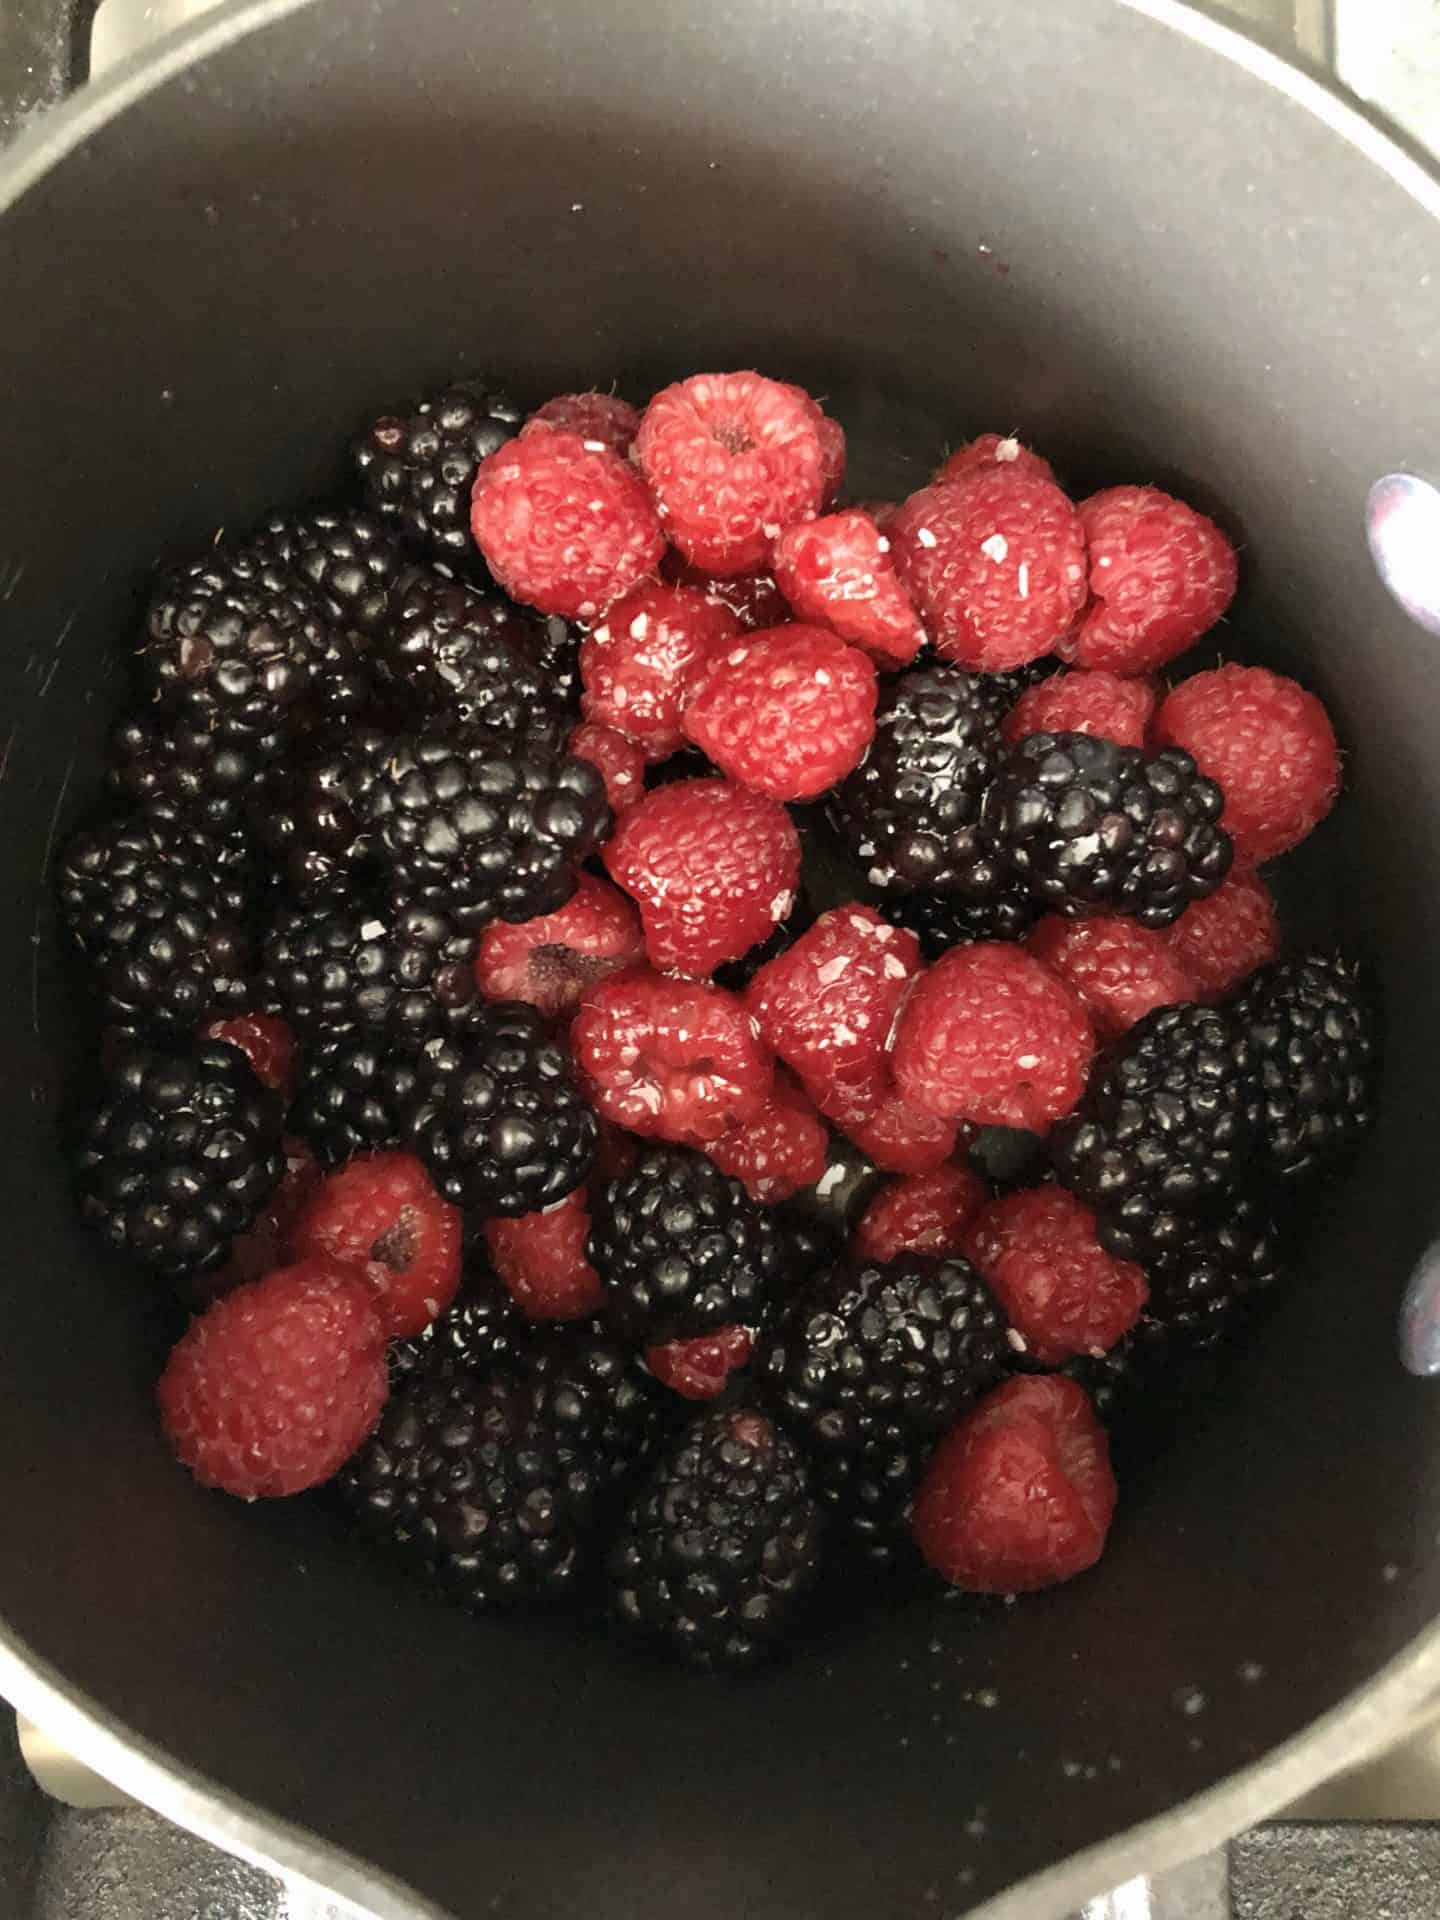 Raspberries and blackberries in pot ready to be cooked